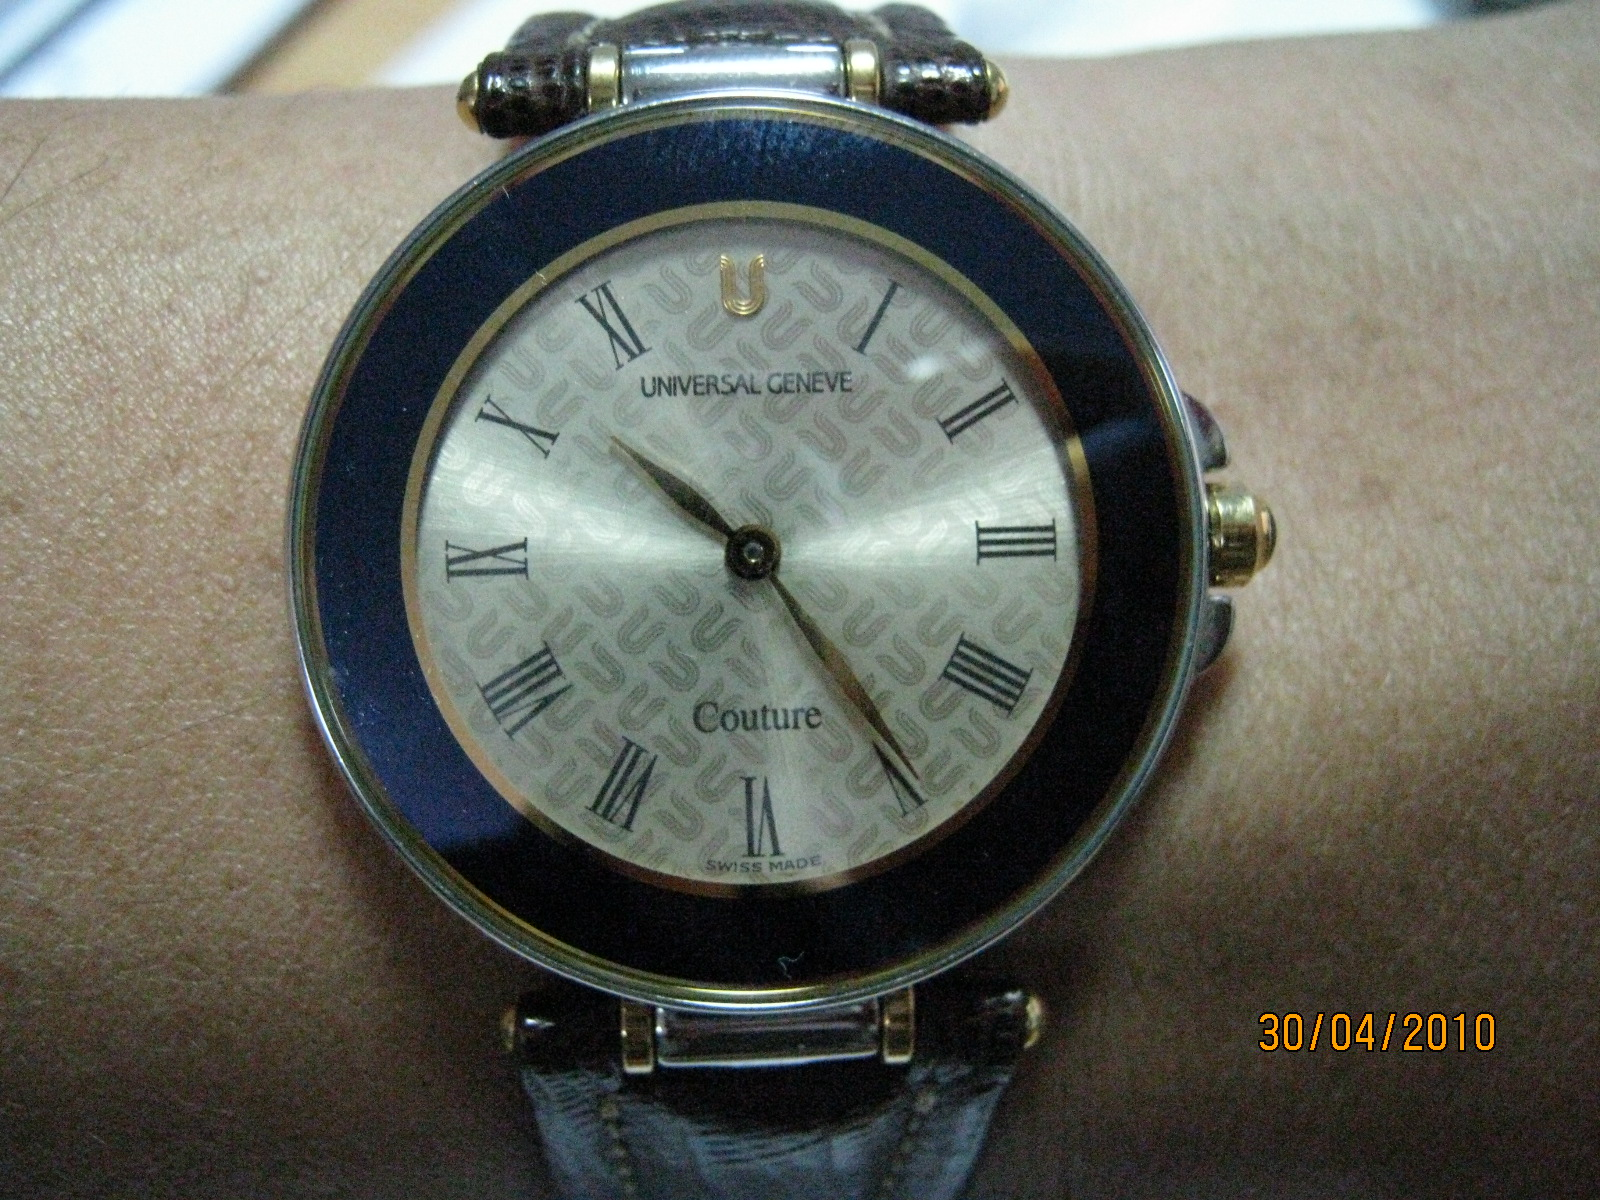 Vintage watches for sale universal geneve couture sold for Couture a geneve